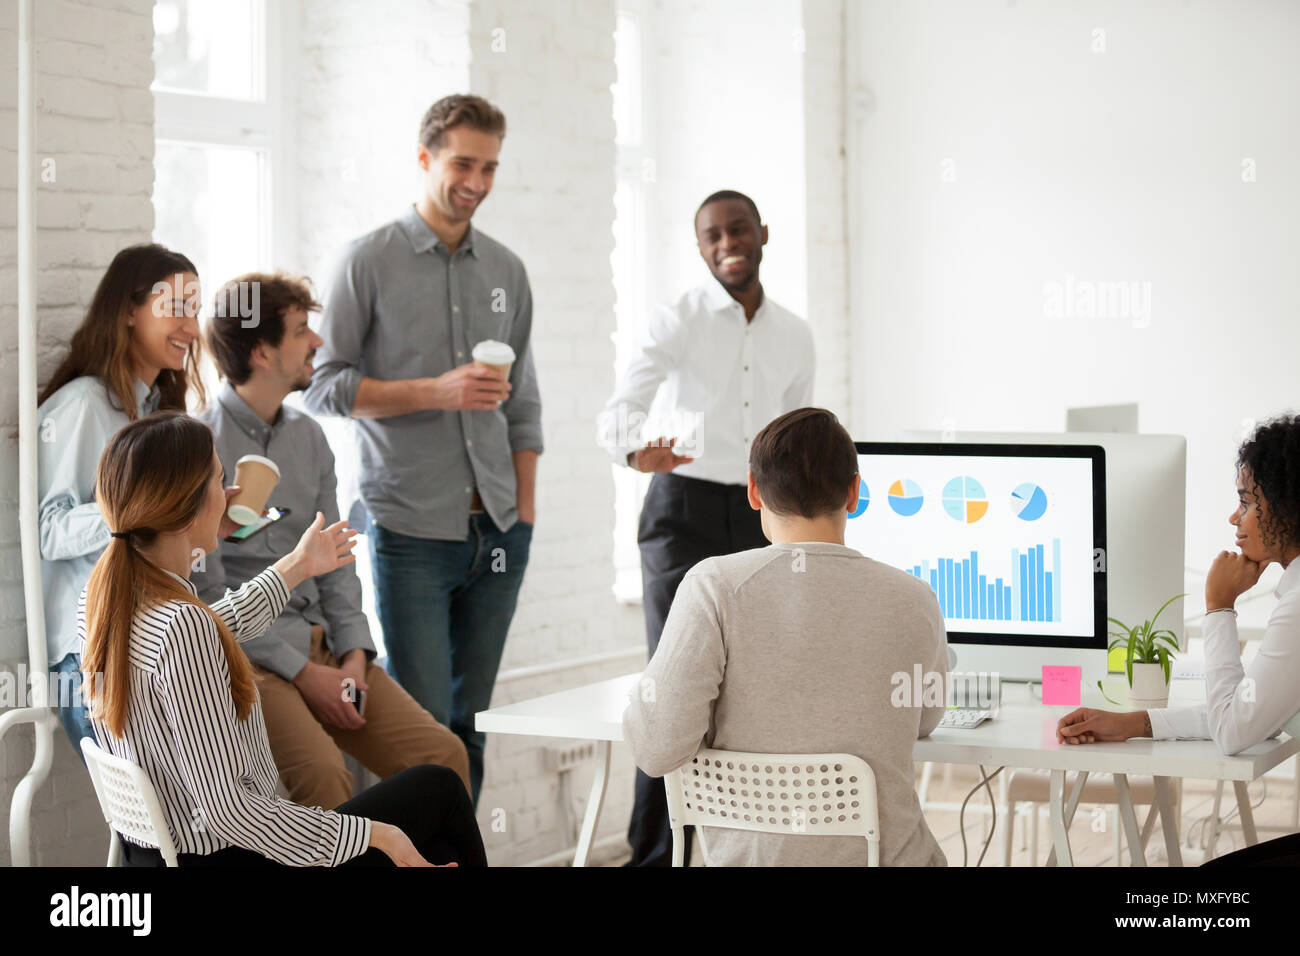 Multiracial team having fun during work break - Stock Image